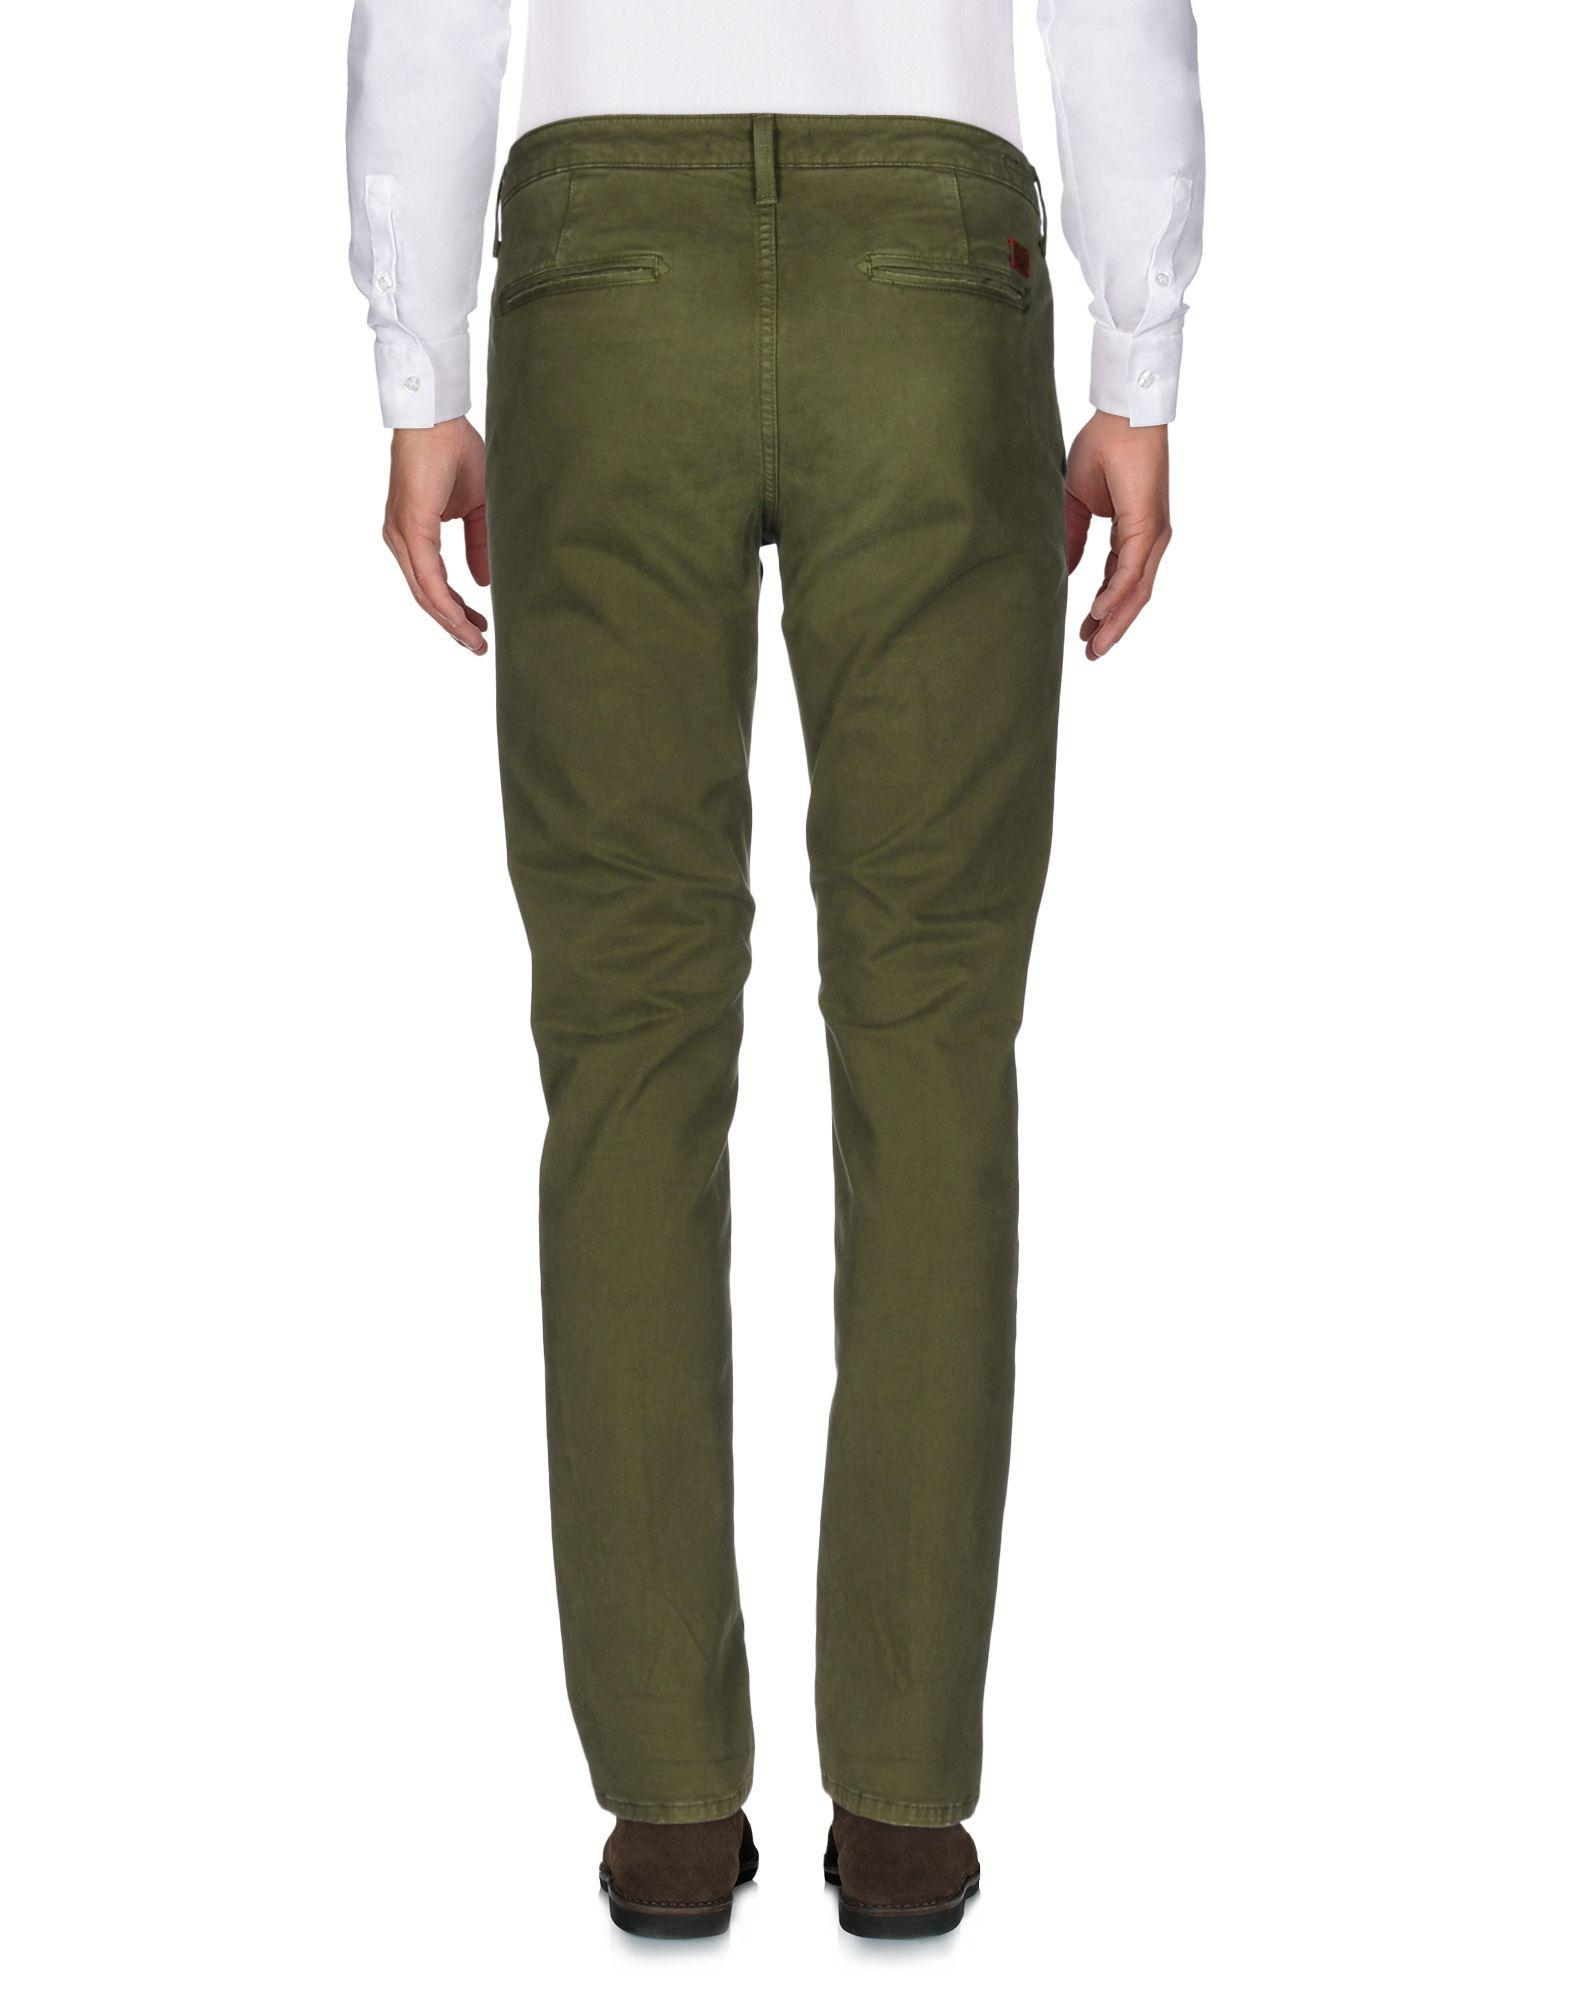 0/zero Construction Leather Casual Pants in Military Green (Green) for Men